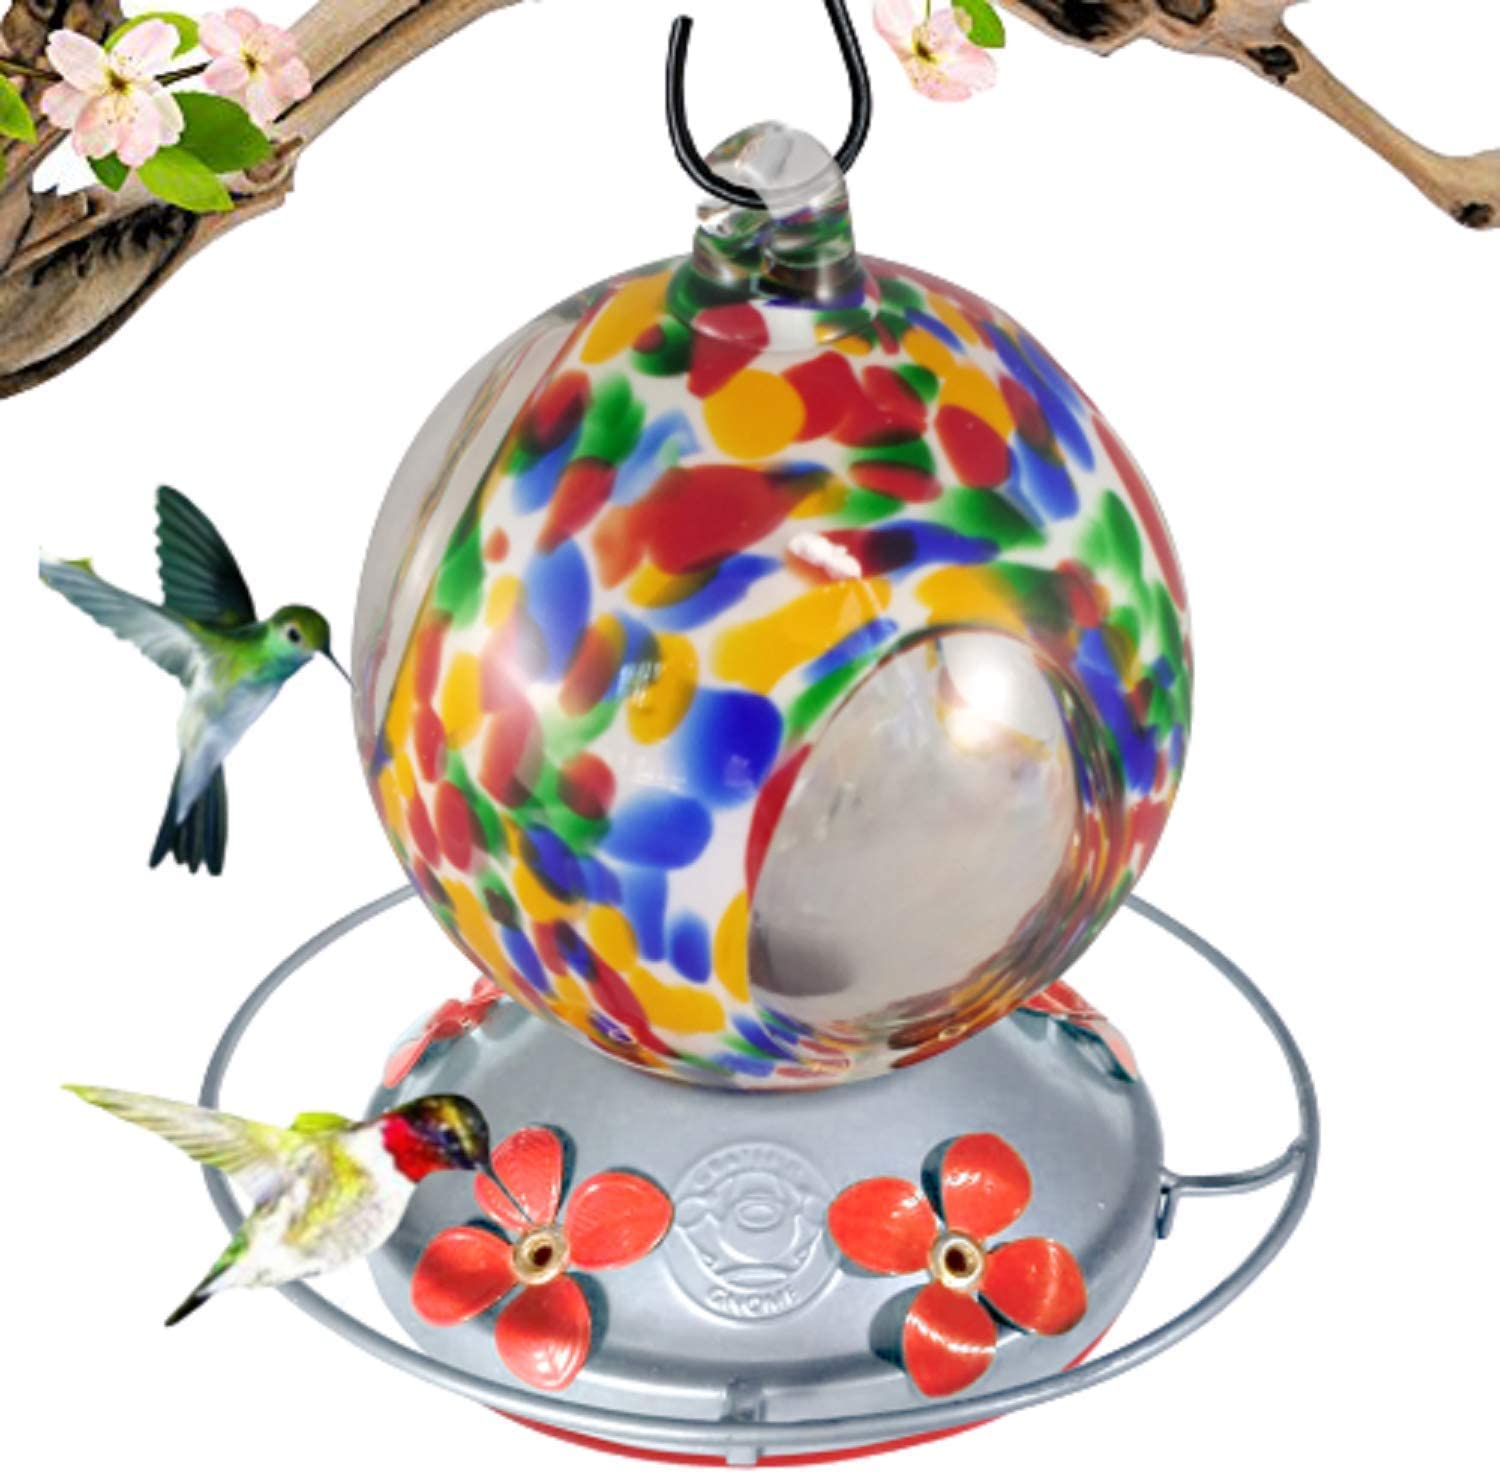 Grateful Gnome - Hummingbird Feeder - Hand Blown Glass - Flower Globe with Window 24 Fluid Ounce Free Bonus Accessories S-Hook, Ant Moat, Brush and Hemp Rope Included